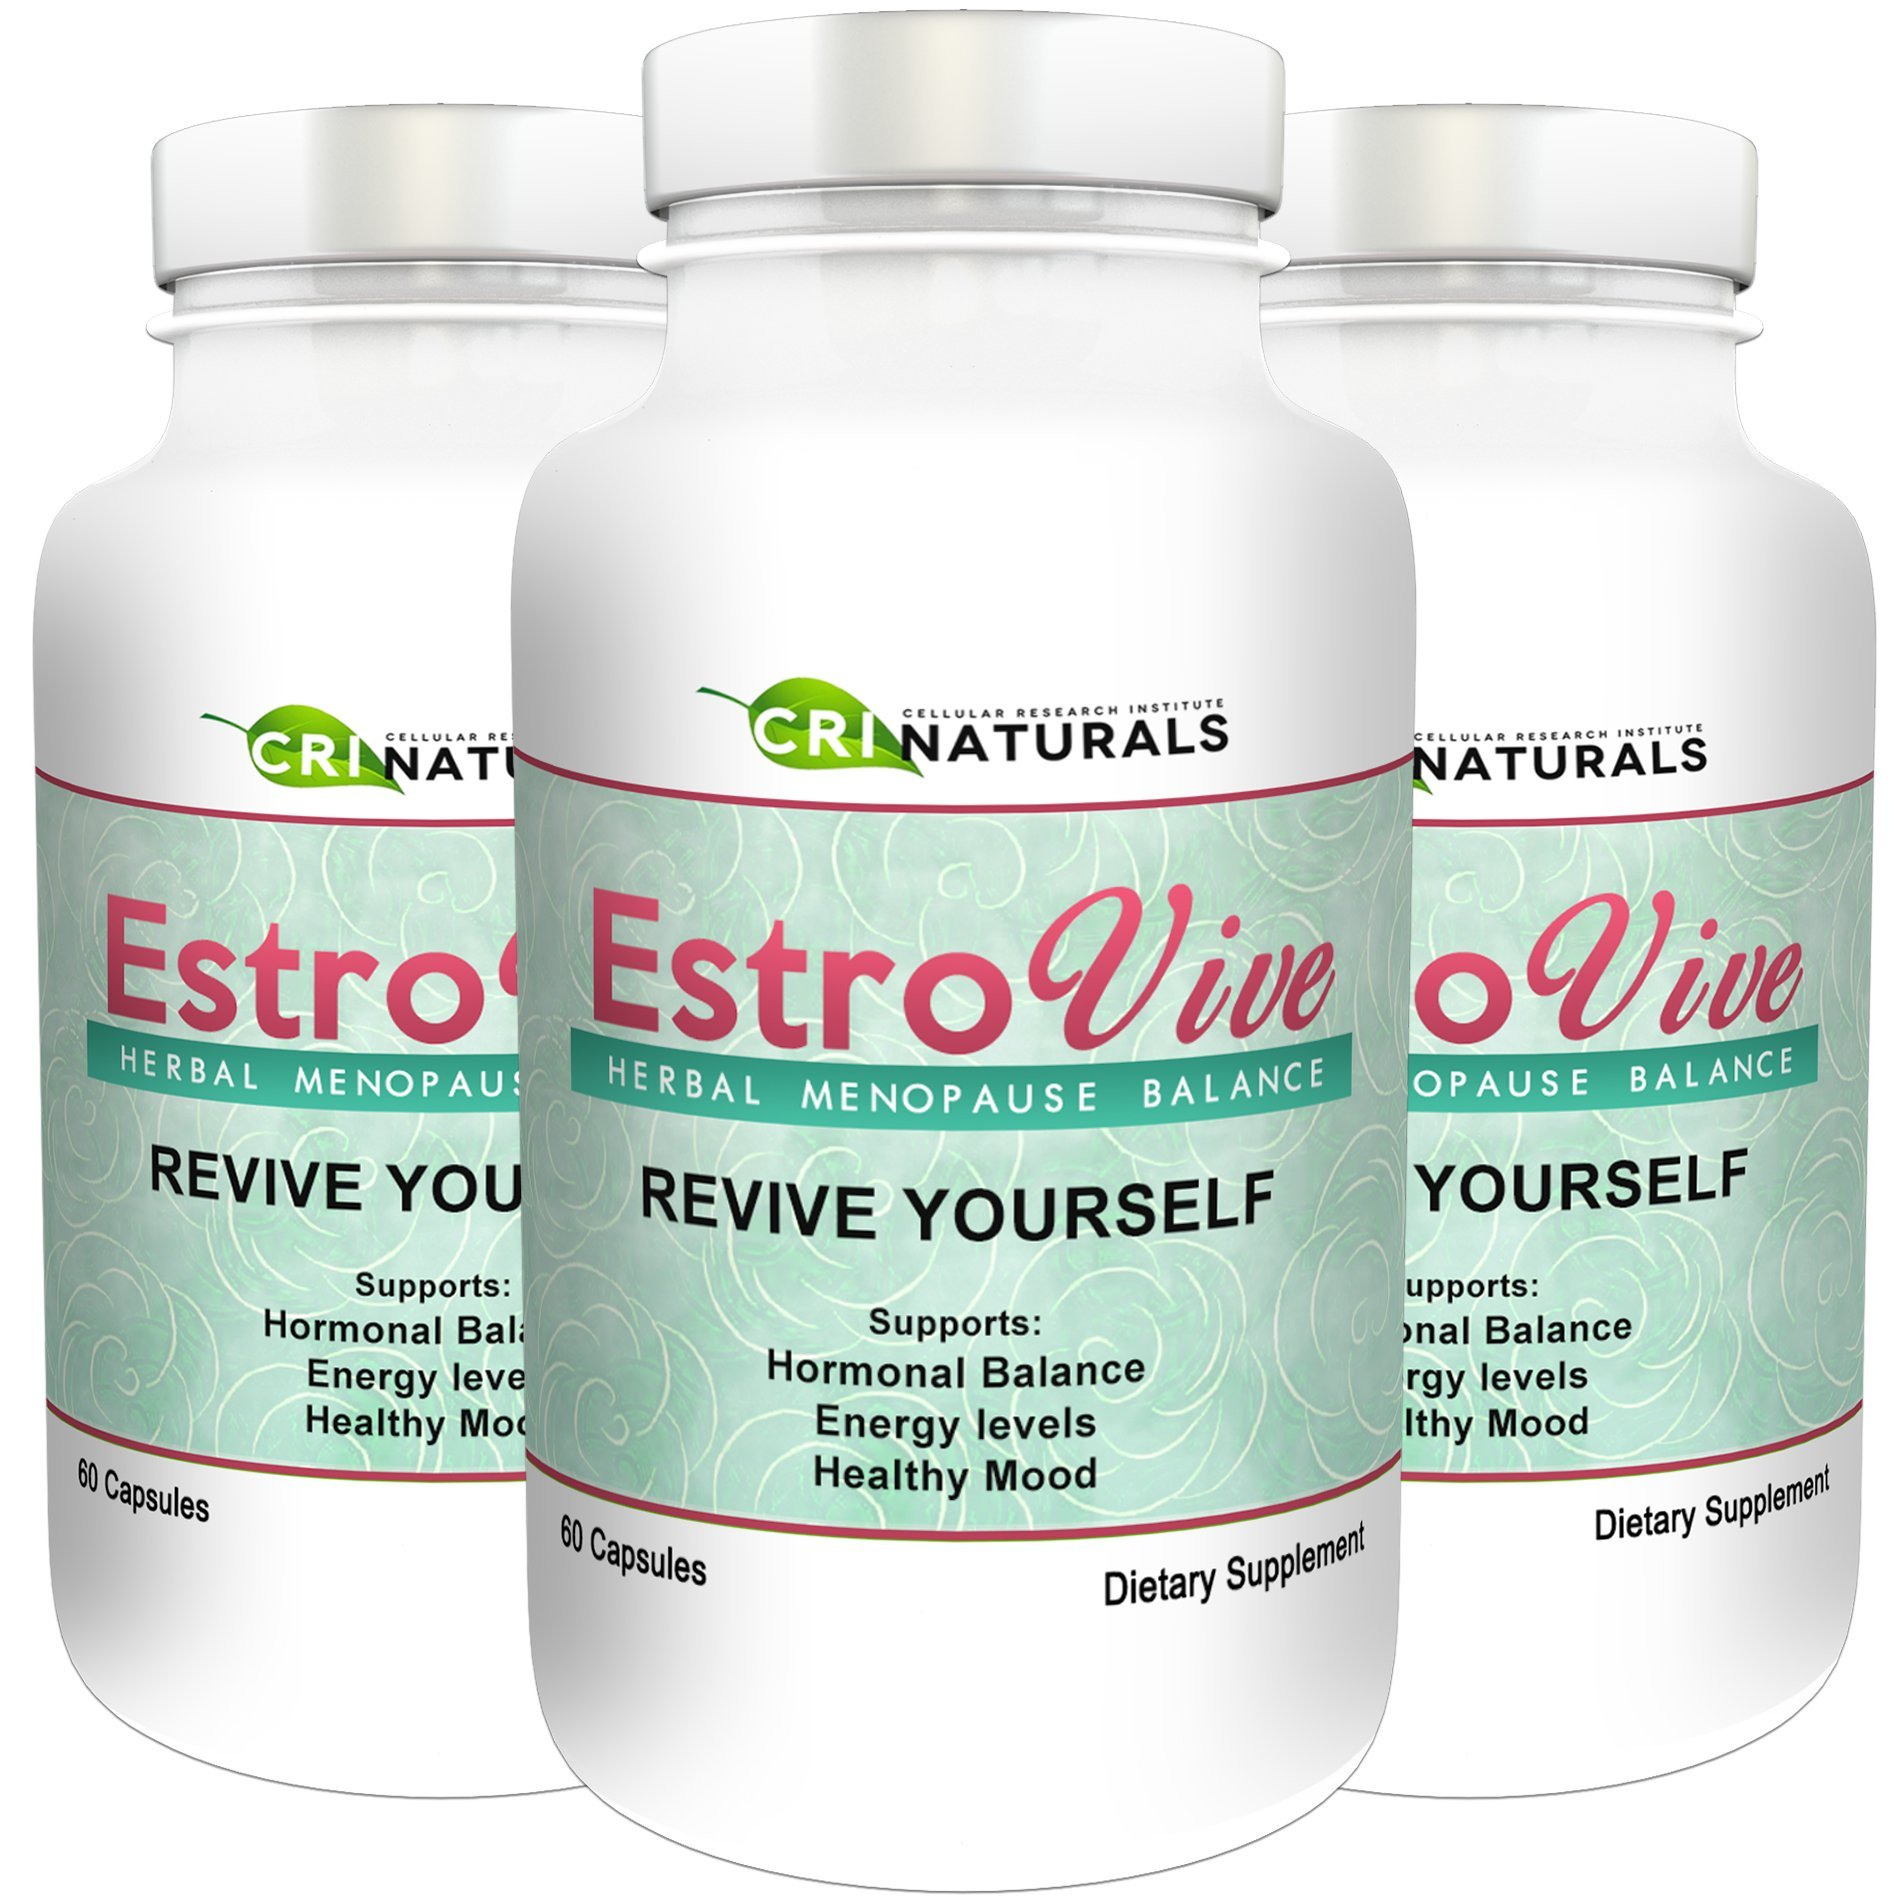 Estrovive - Hot Flashes Menopause Relief - Black Cohosh Menopause Complex - Sleeping Pills - Hot Flash Relief 3 - Pack